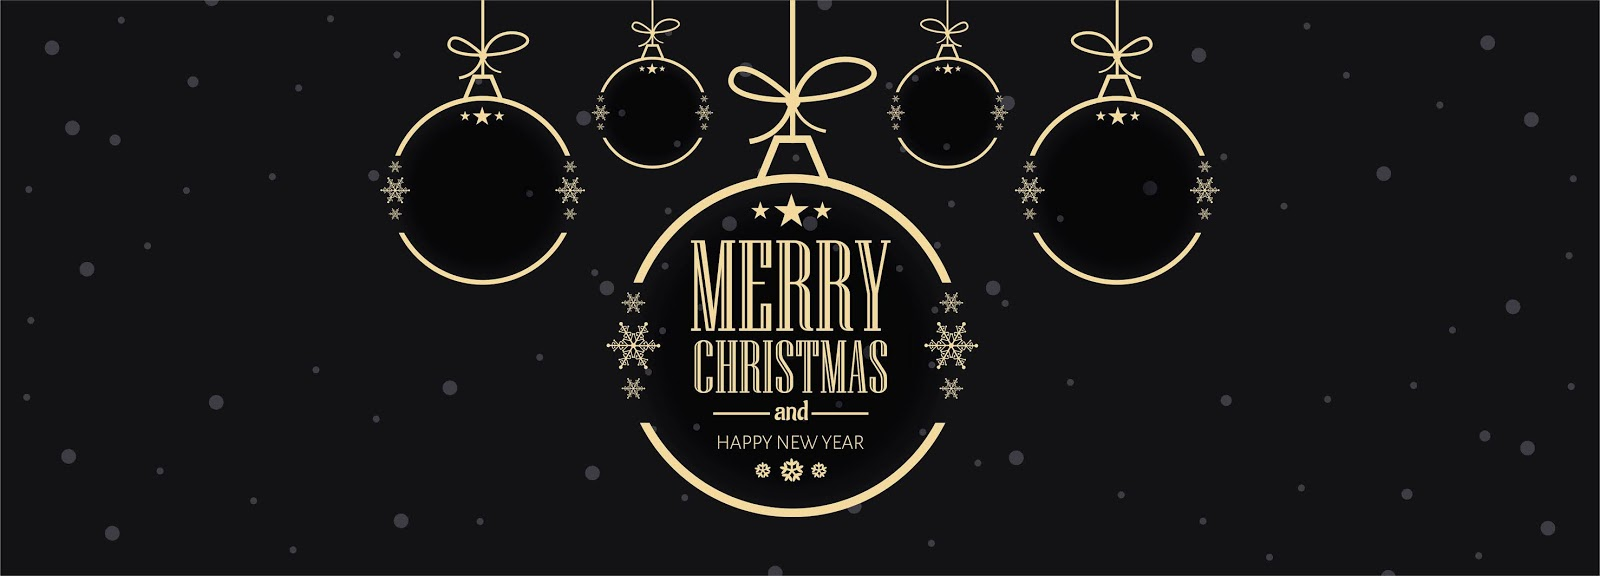 Christmas Celebrations Card Banner Template Vector Illustration Free Download Vector CDR, AI, EPS and PNG Formats